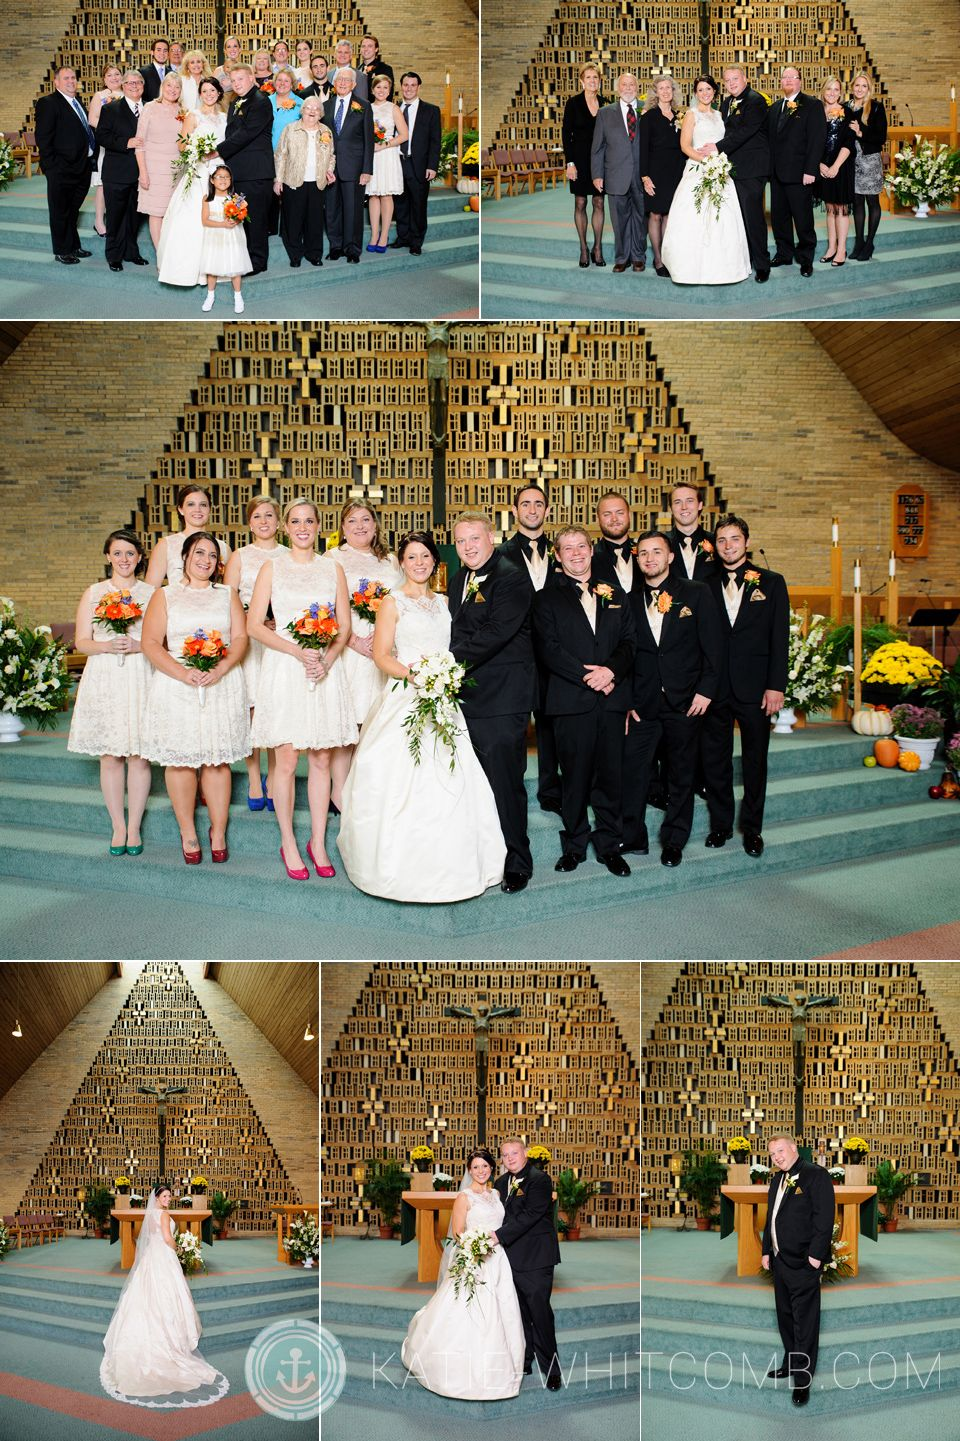 Family Formals at Little Flower Catholic Church in South Bend after a wedding ceremony